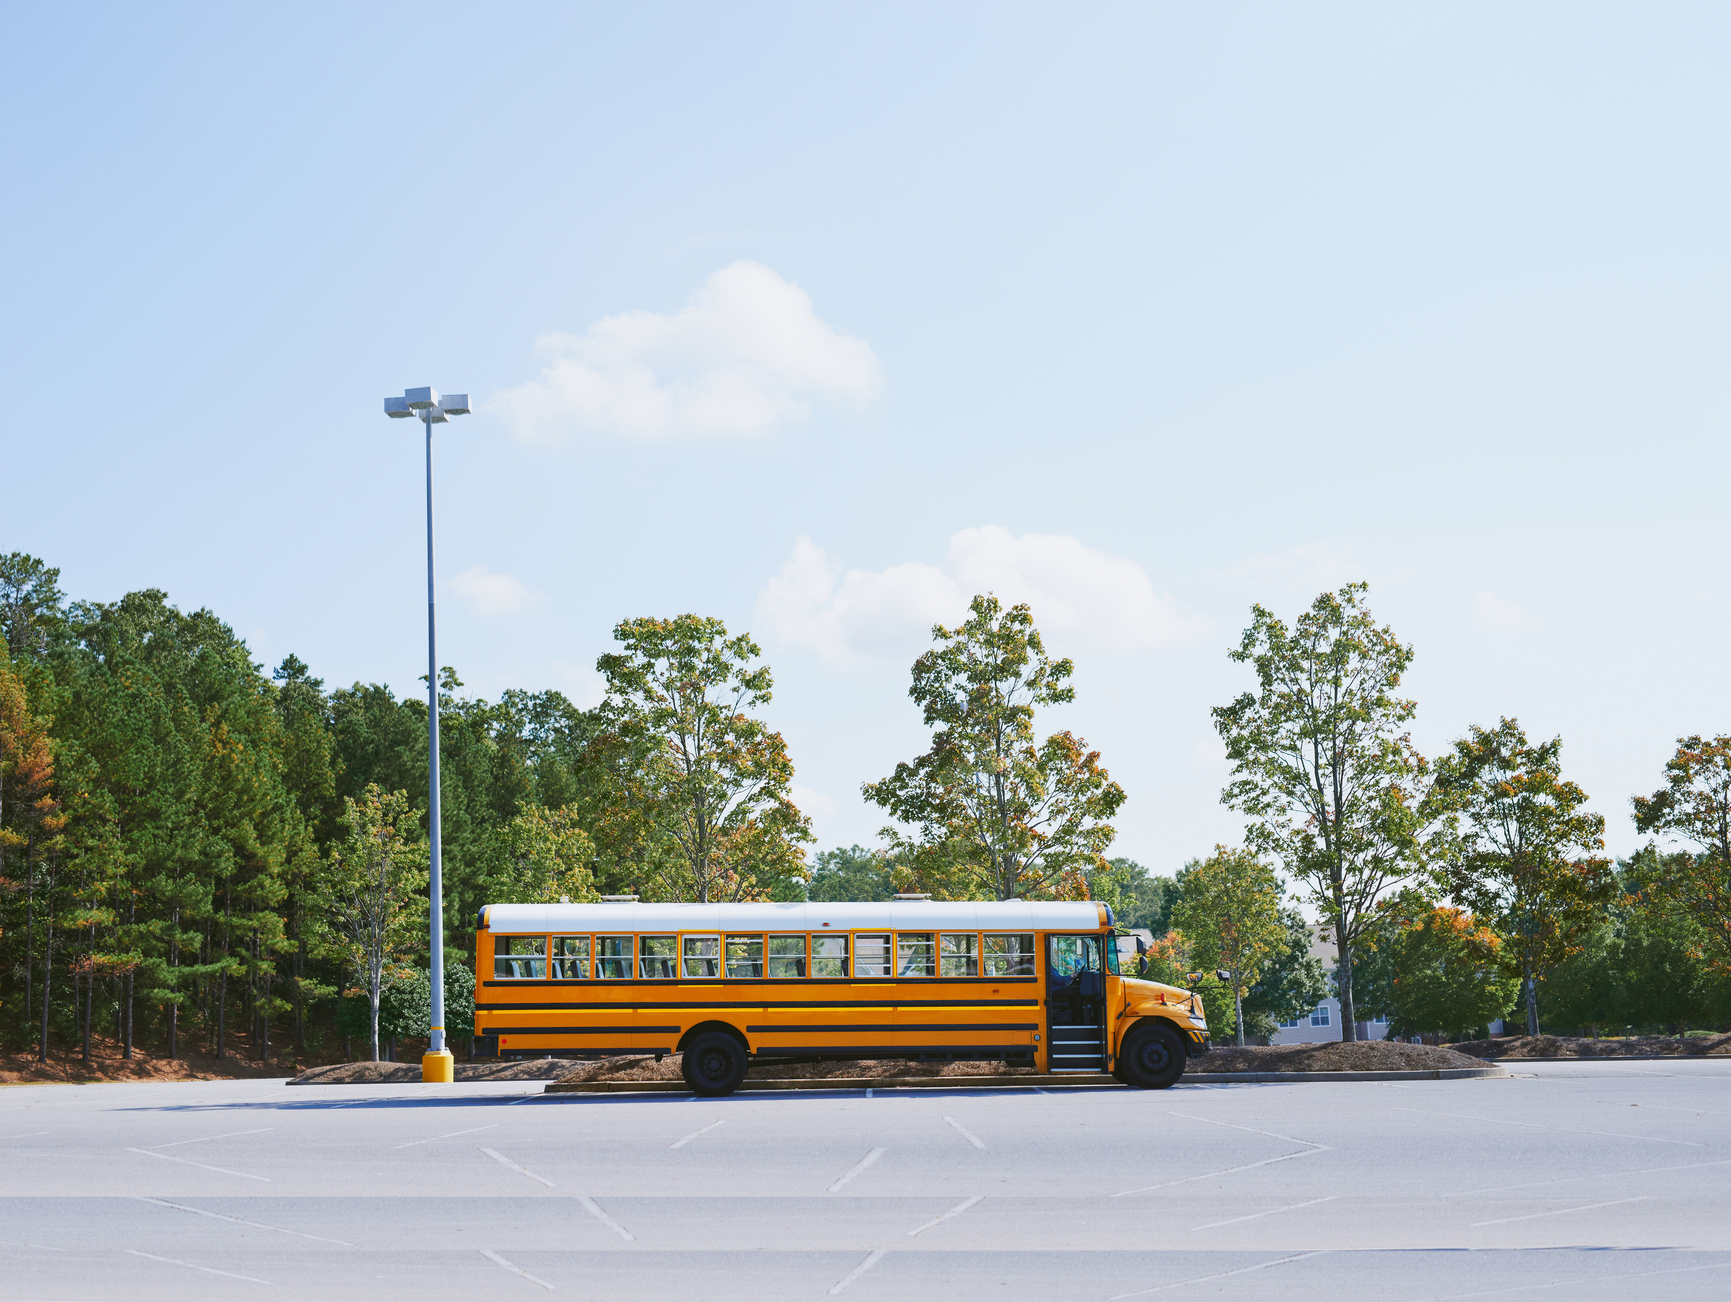 American School Bus waiting in a parking lot